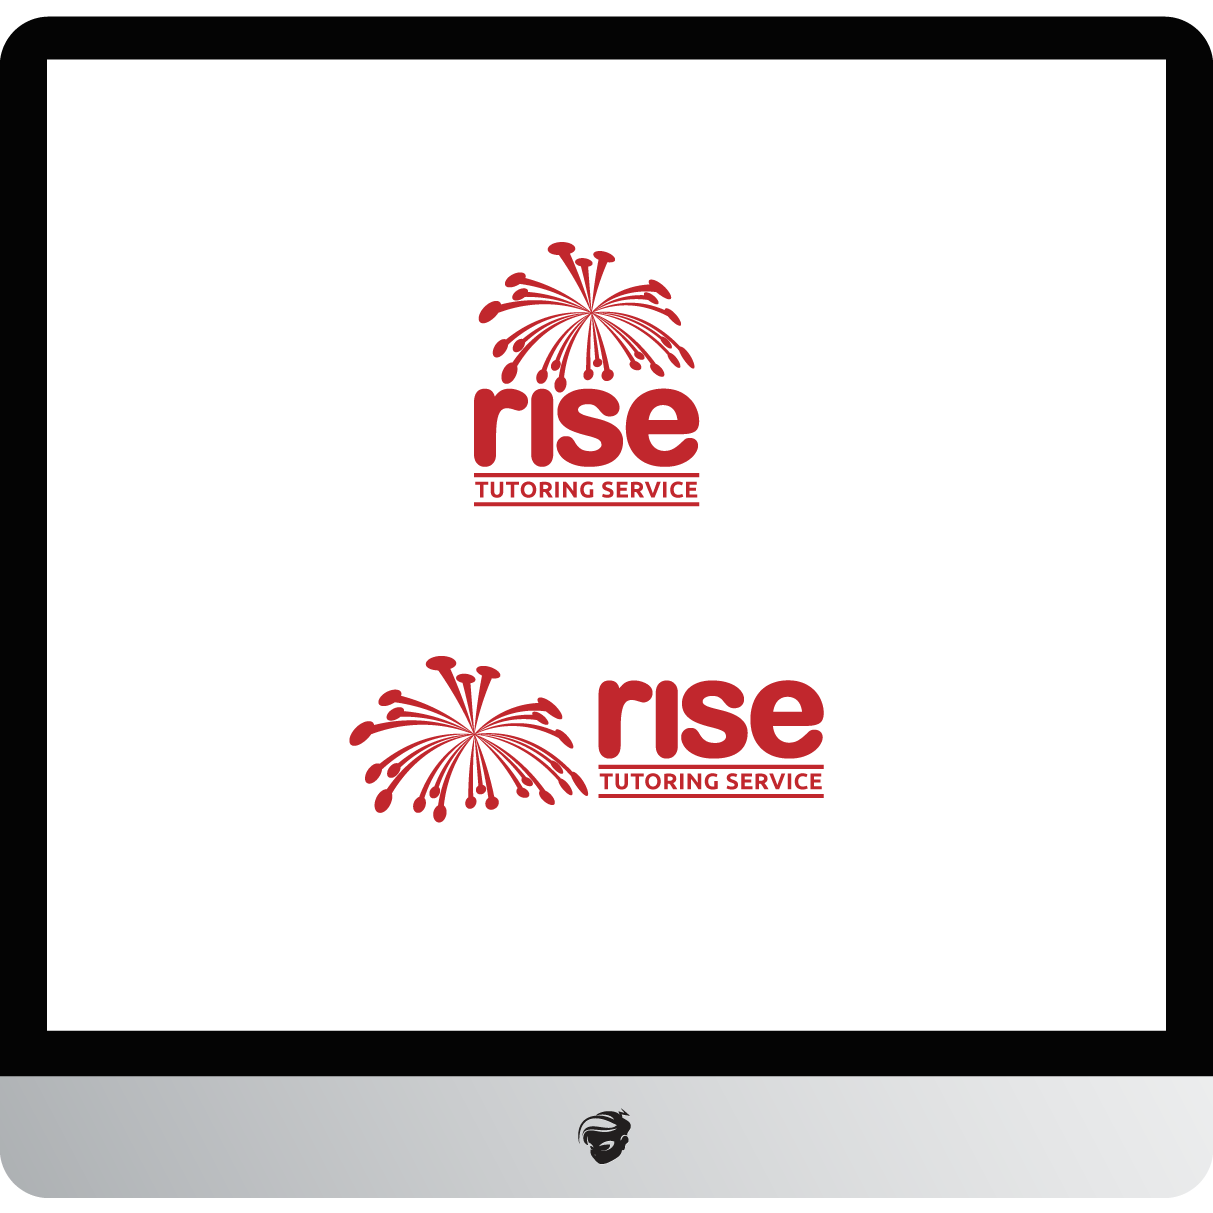 Logo Design by zesthar - Entry No. 232 in the Logo Design Contest Imaginative Logo Design for Rise Tutoring Service.